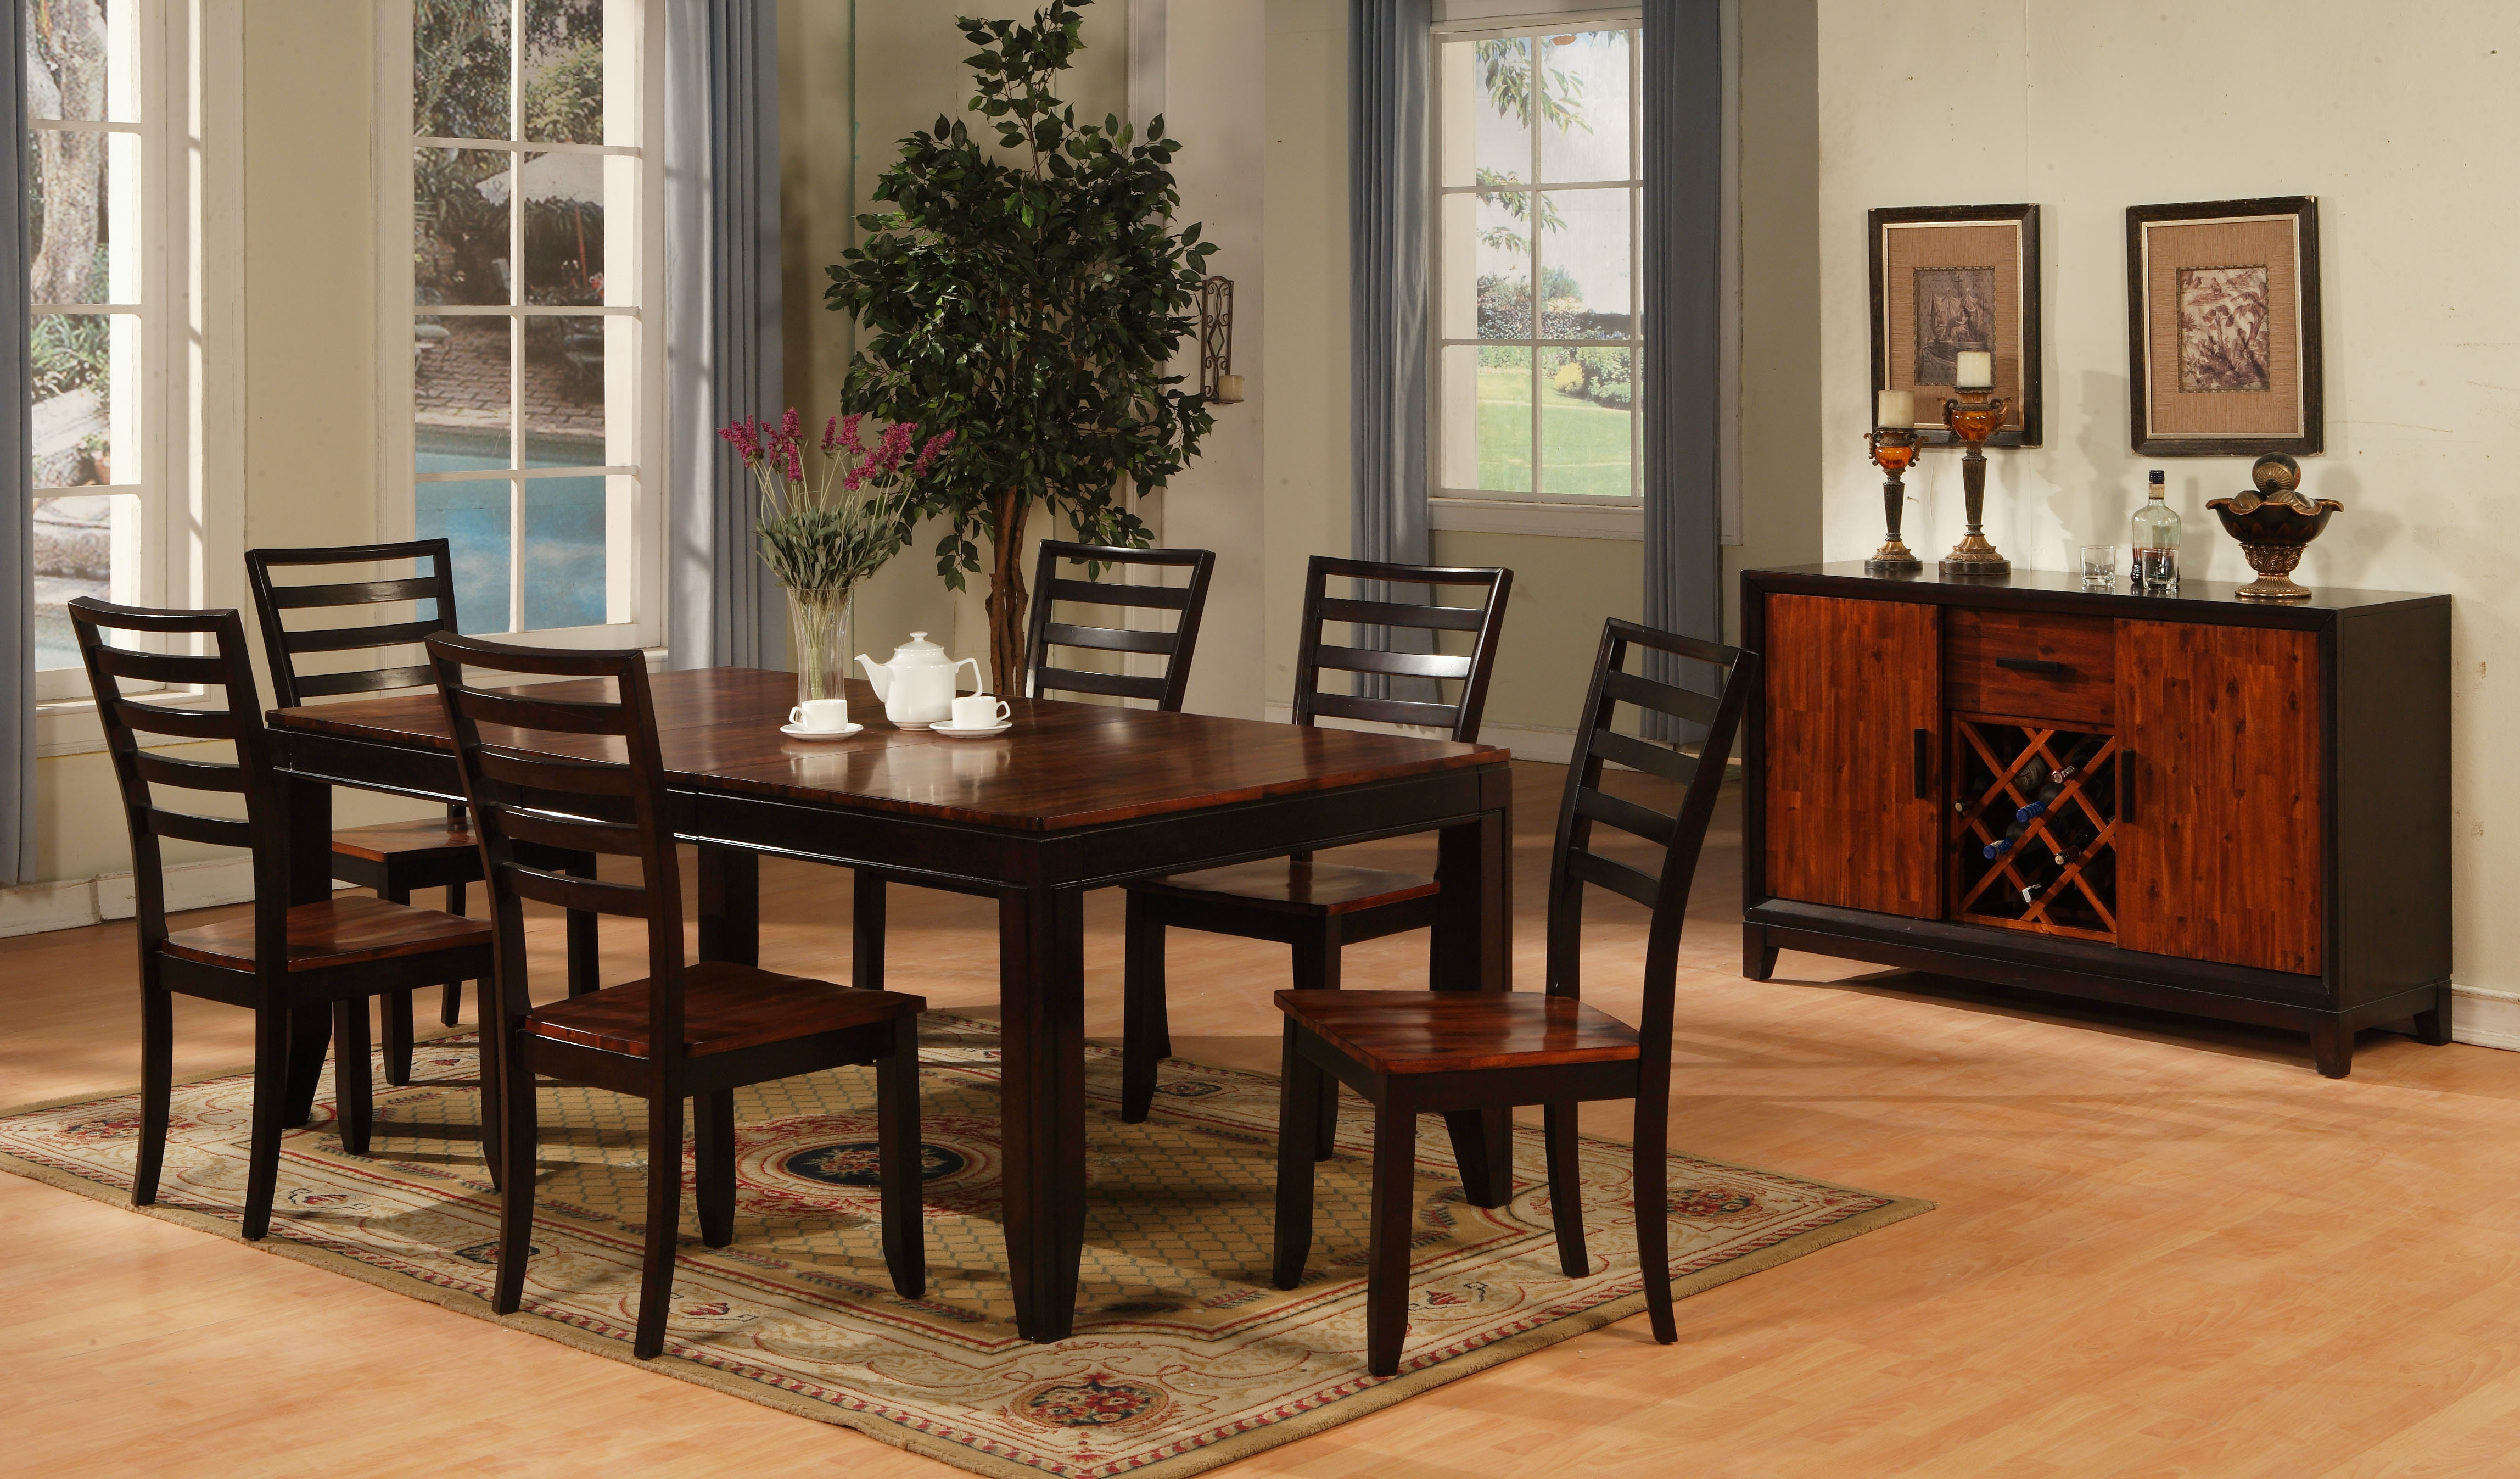 Holland House Dining Room Side Chair. 1267 441s At American Factory Direct